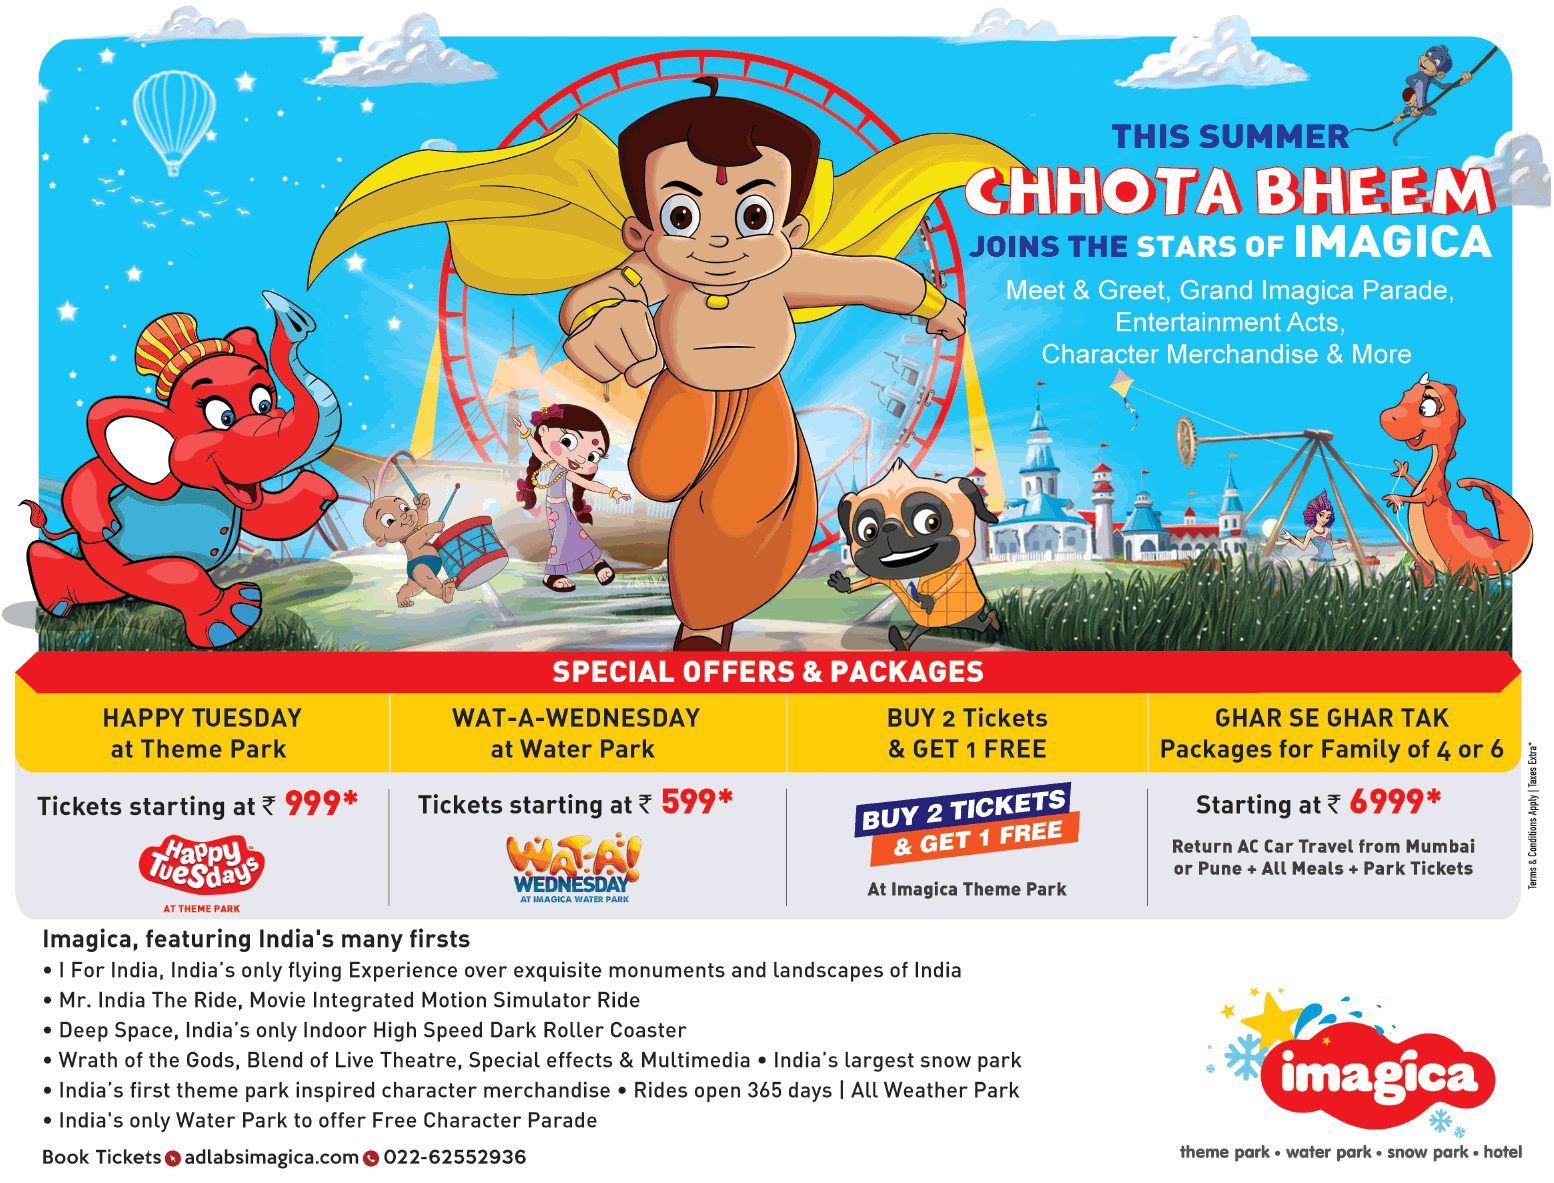 Imagica This Summer Chhota Bheem Join The Stars Of Imagica Ad